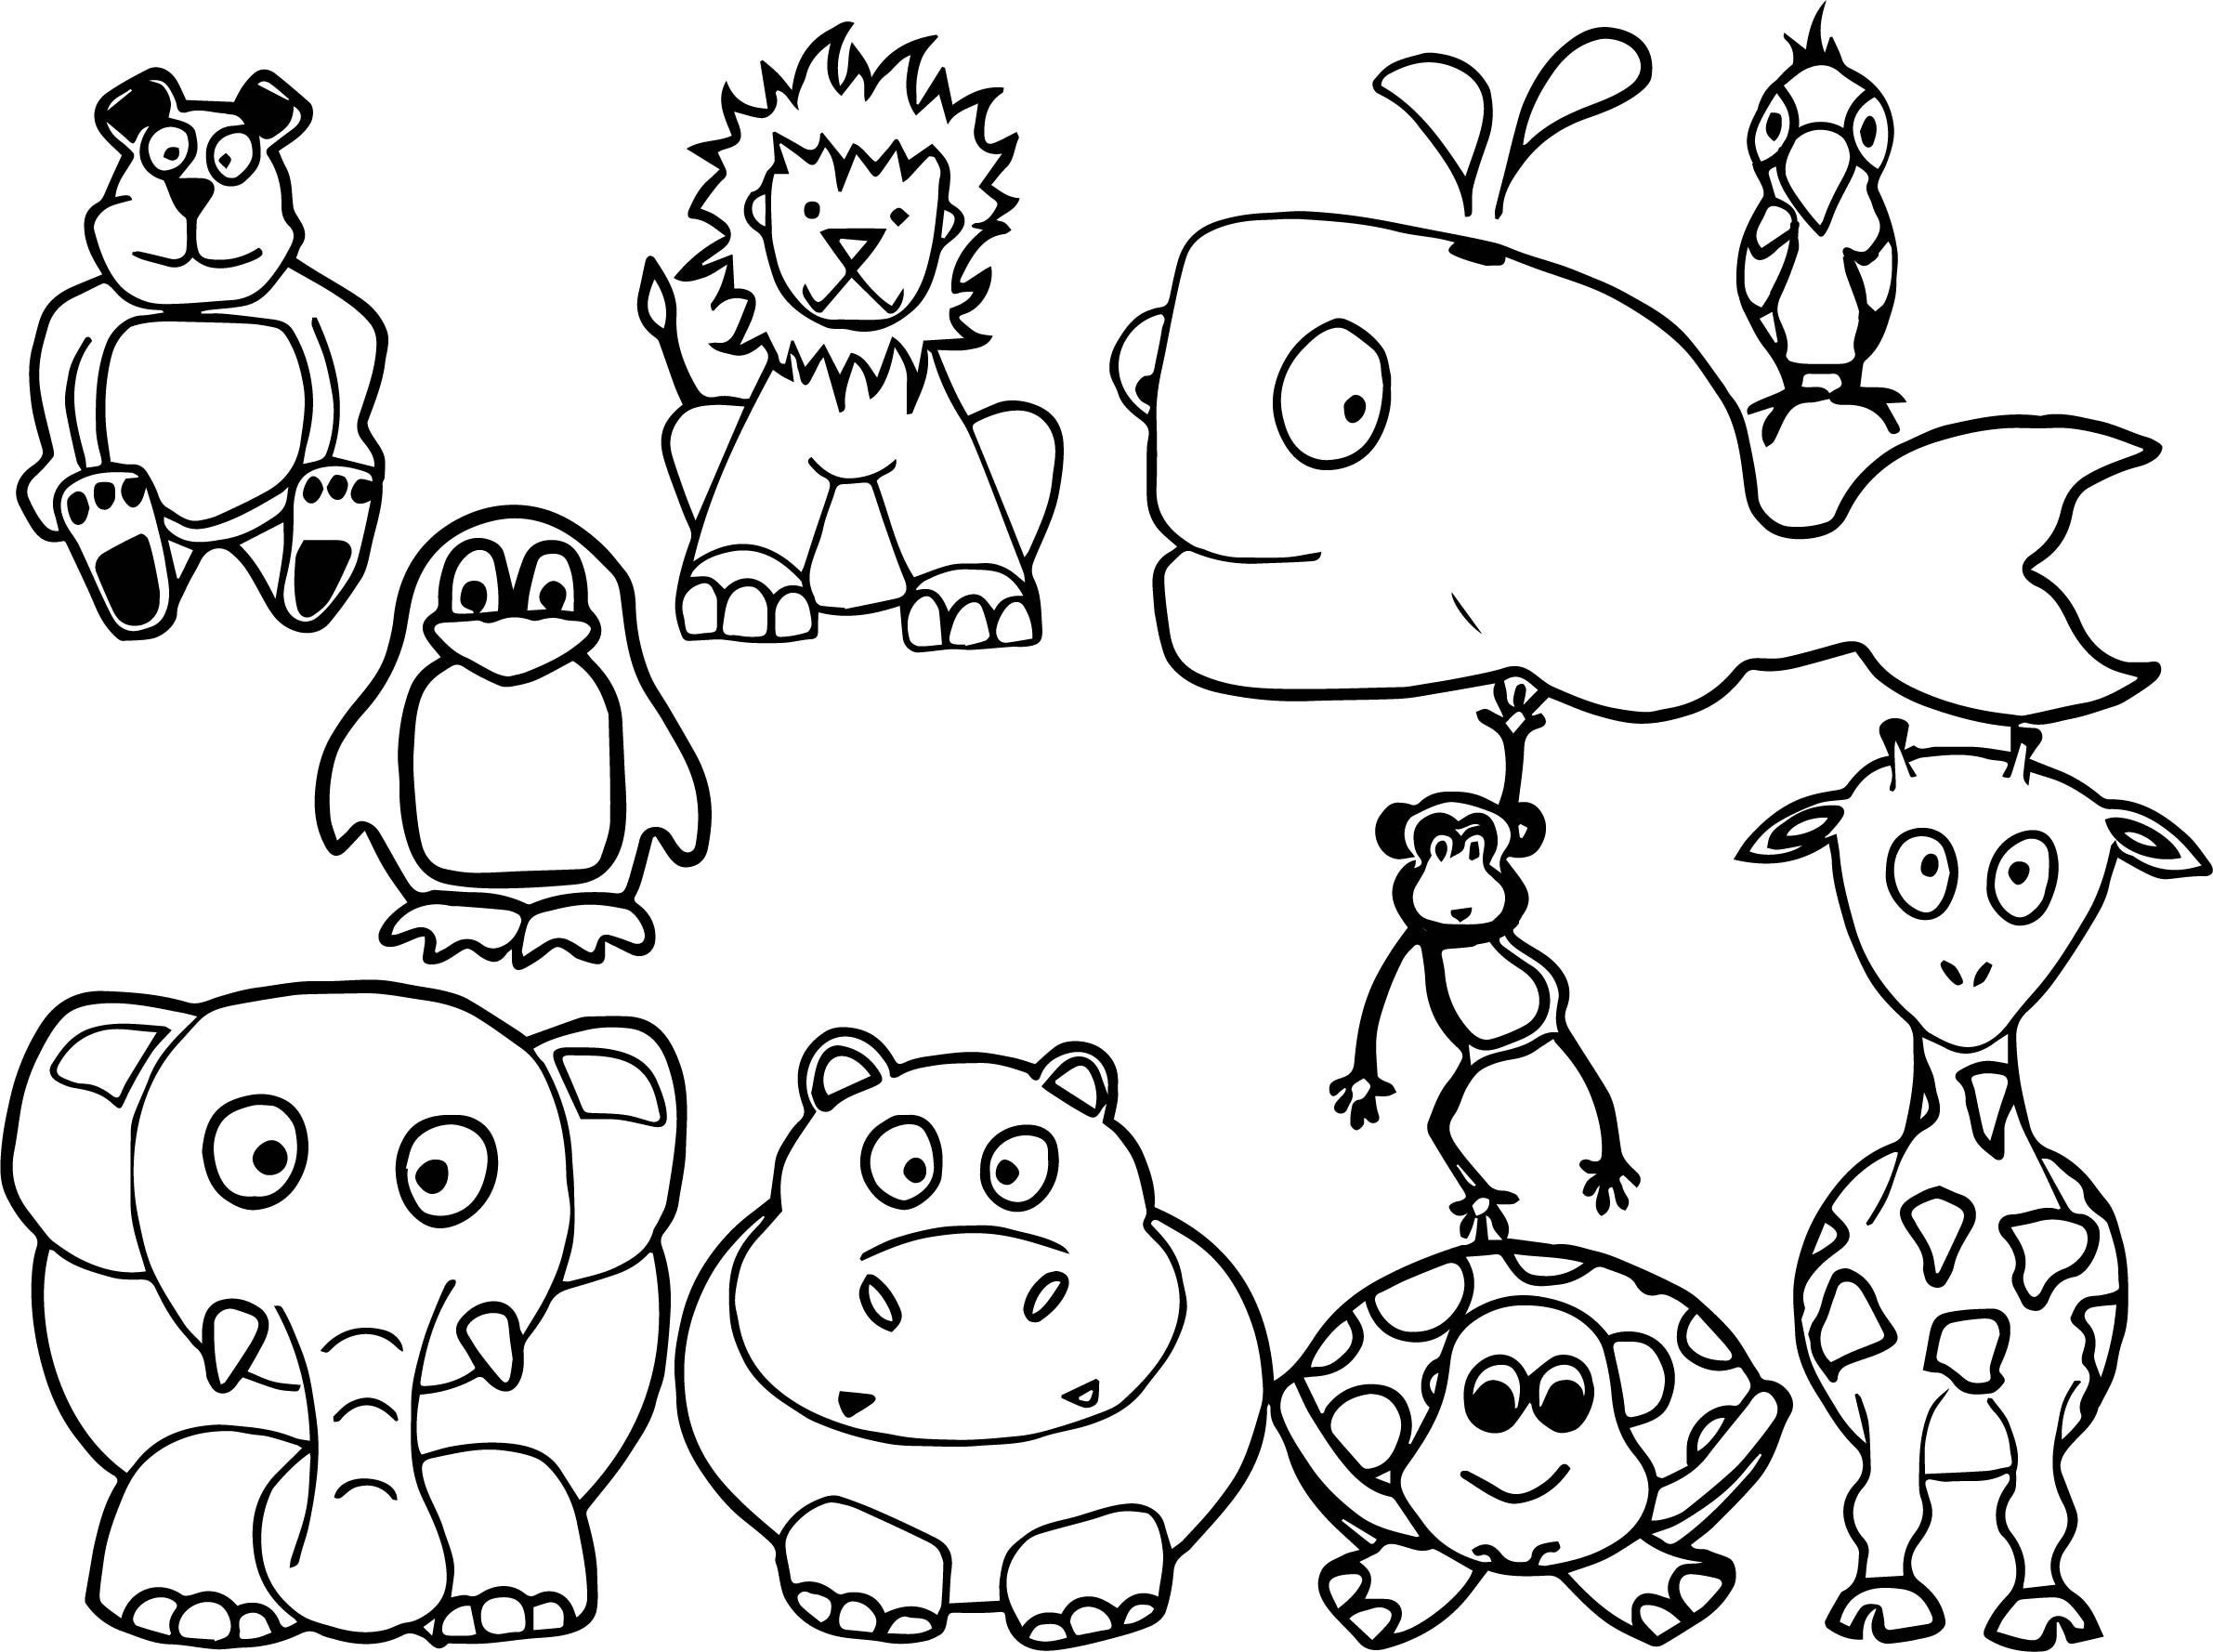 Free animal coloring pages for kids